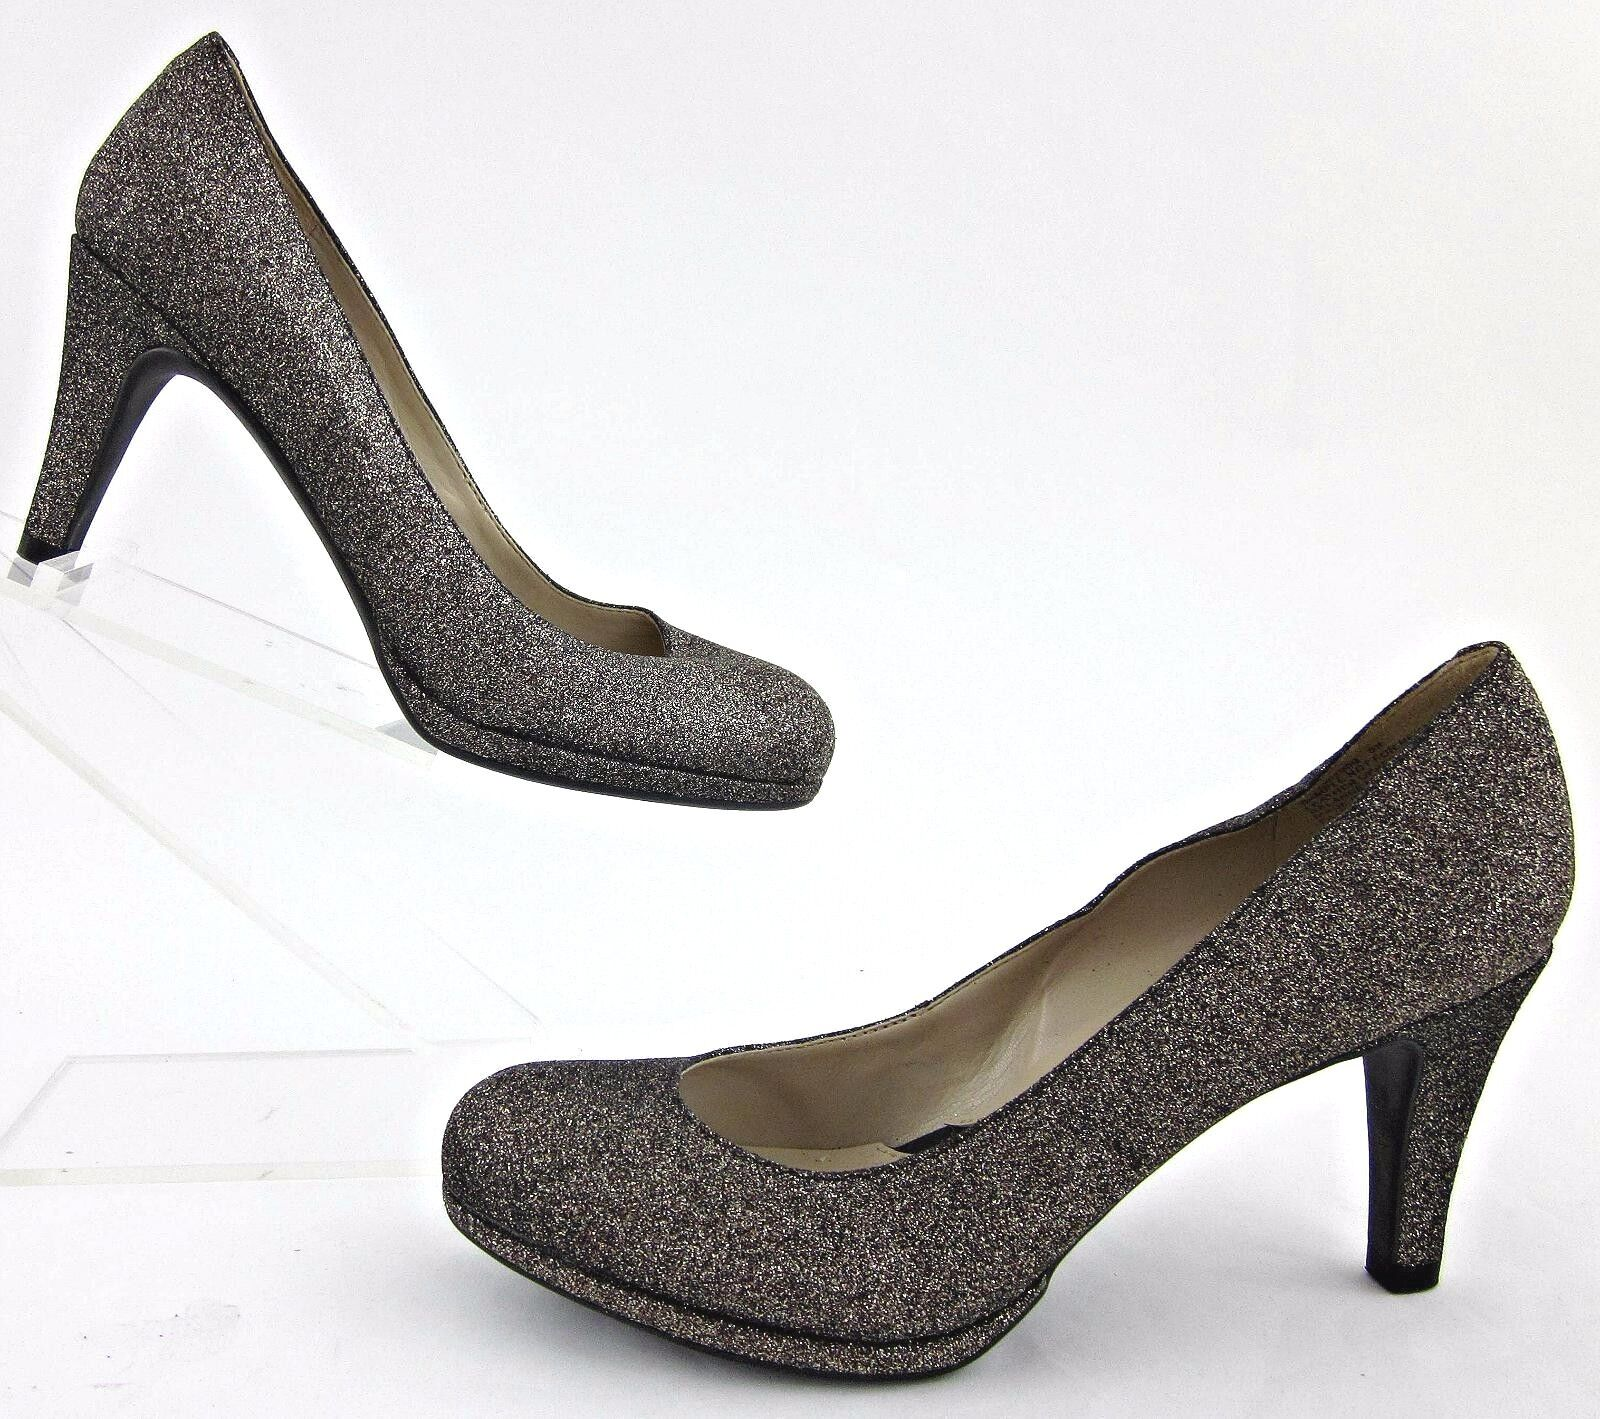 NEW Naturalizer 'Lennox' Round Toe Dress Pumps Platinum Glitter Leather 6B